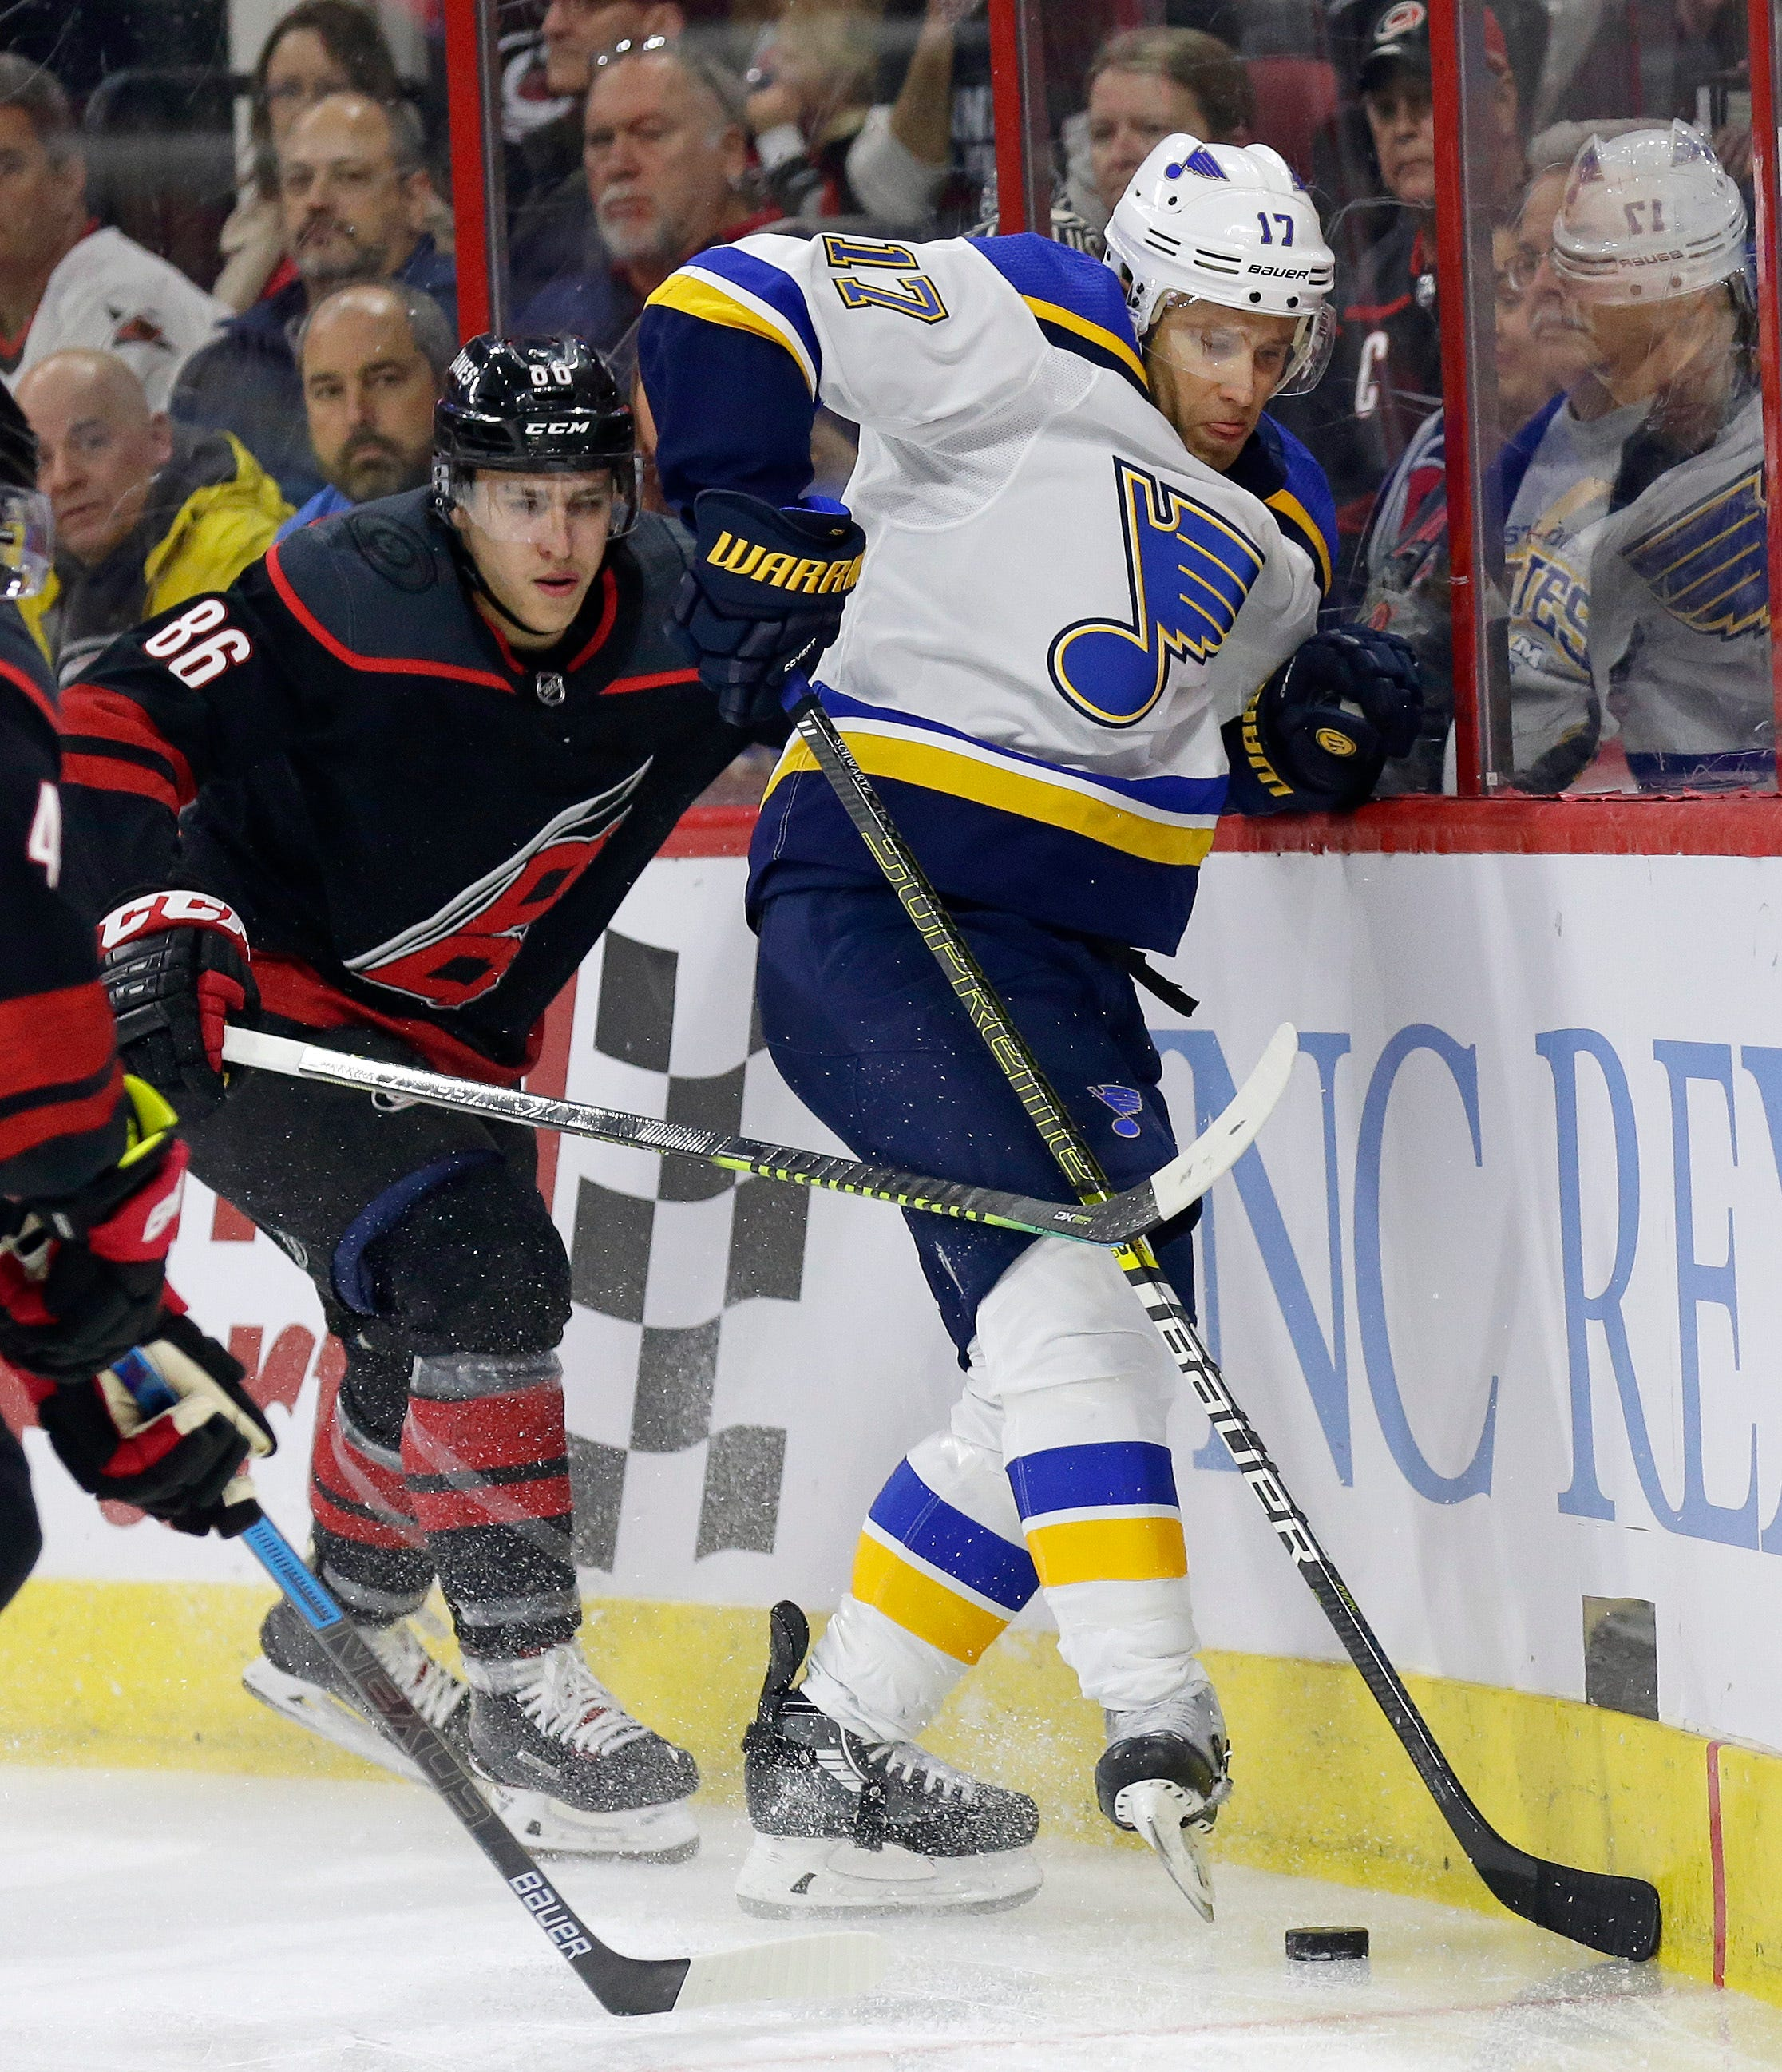 Aho's goal, assist lead surging Hurricanes past Blues 5-2